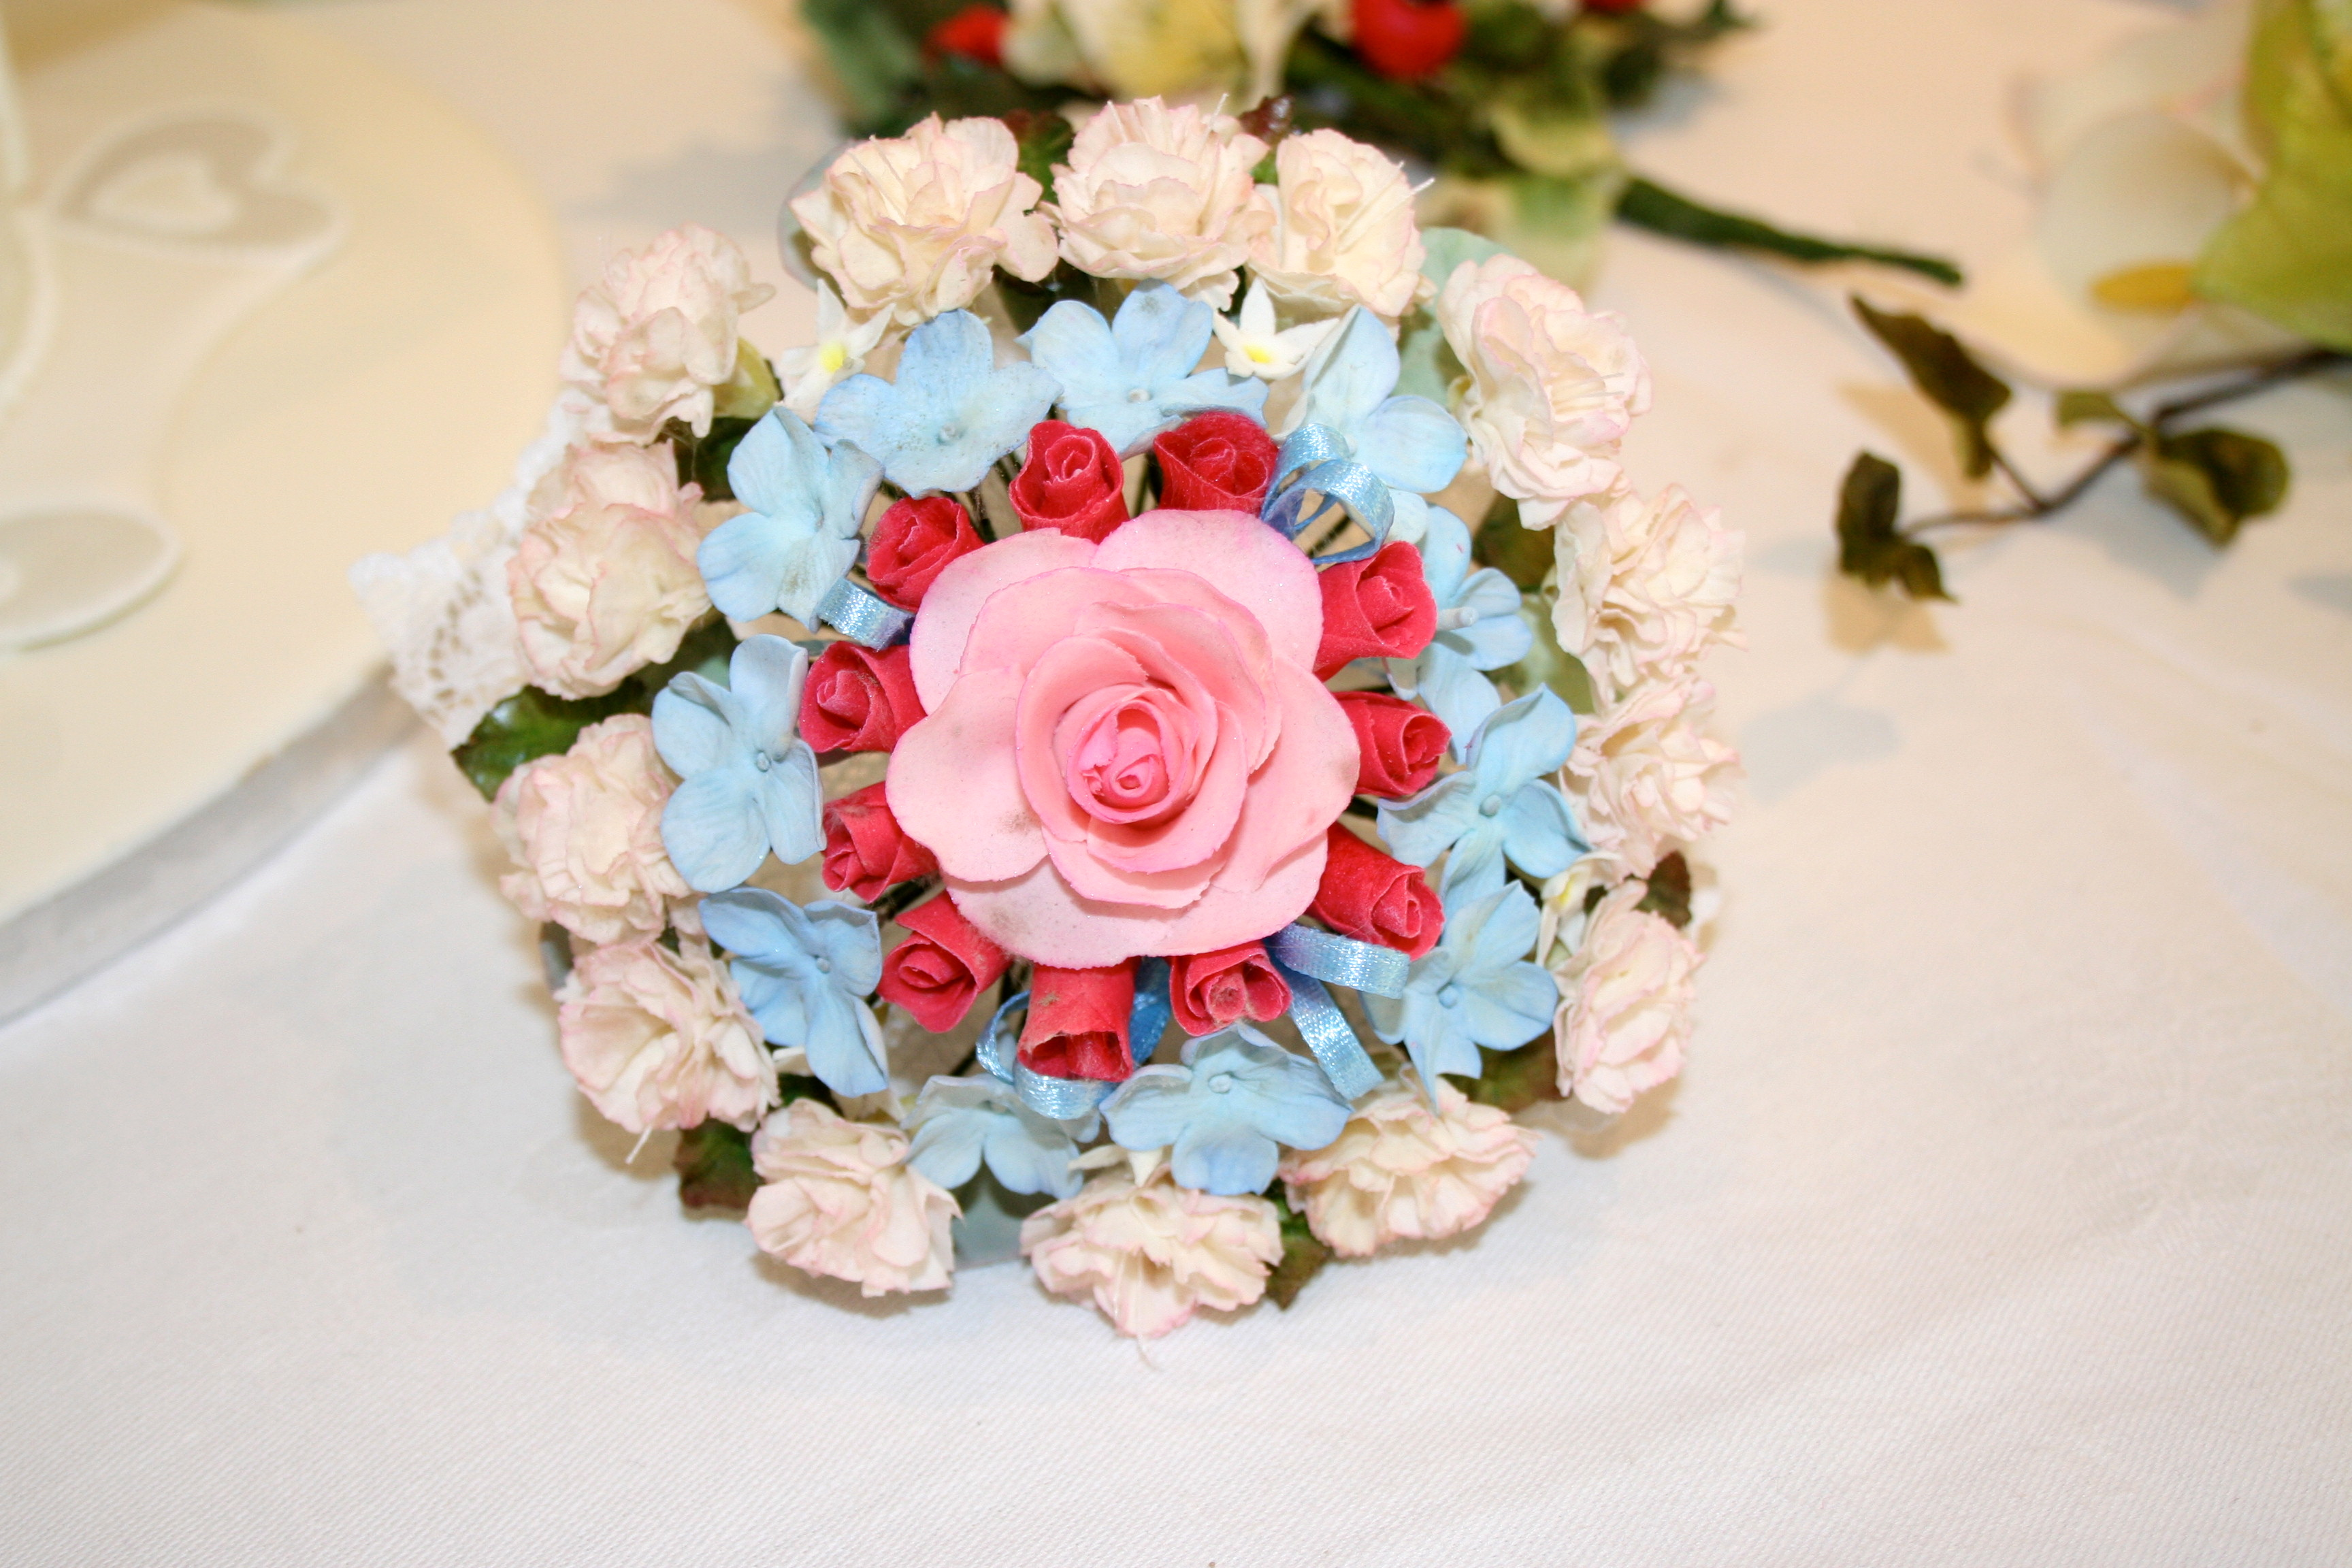 Sugarcraft Bouquet